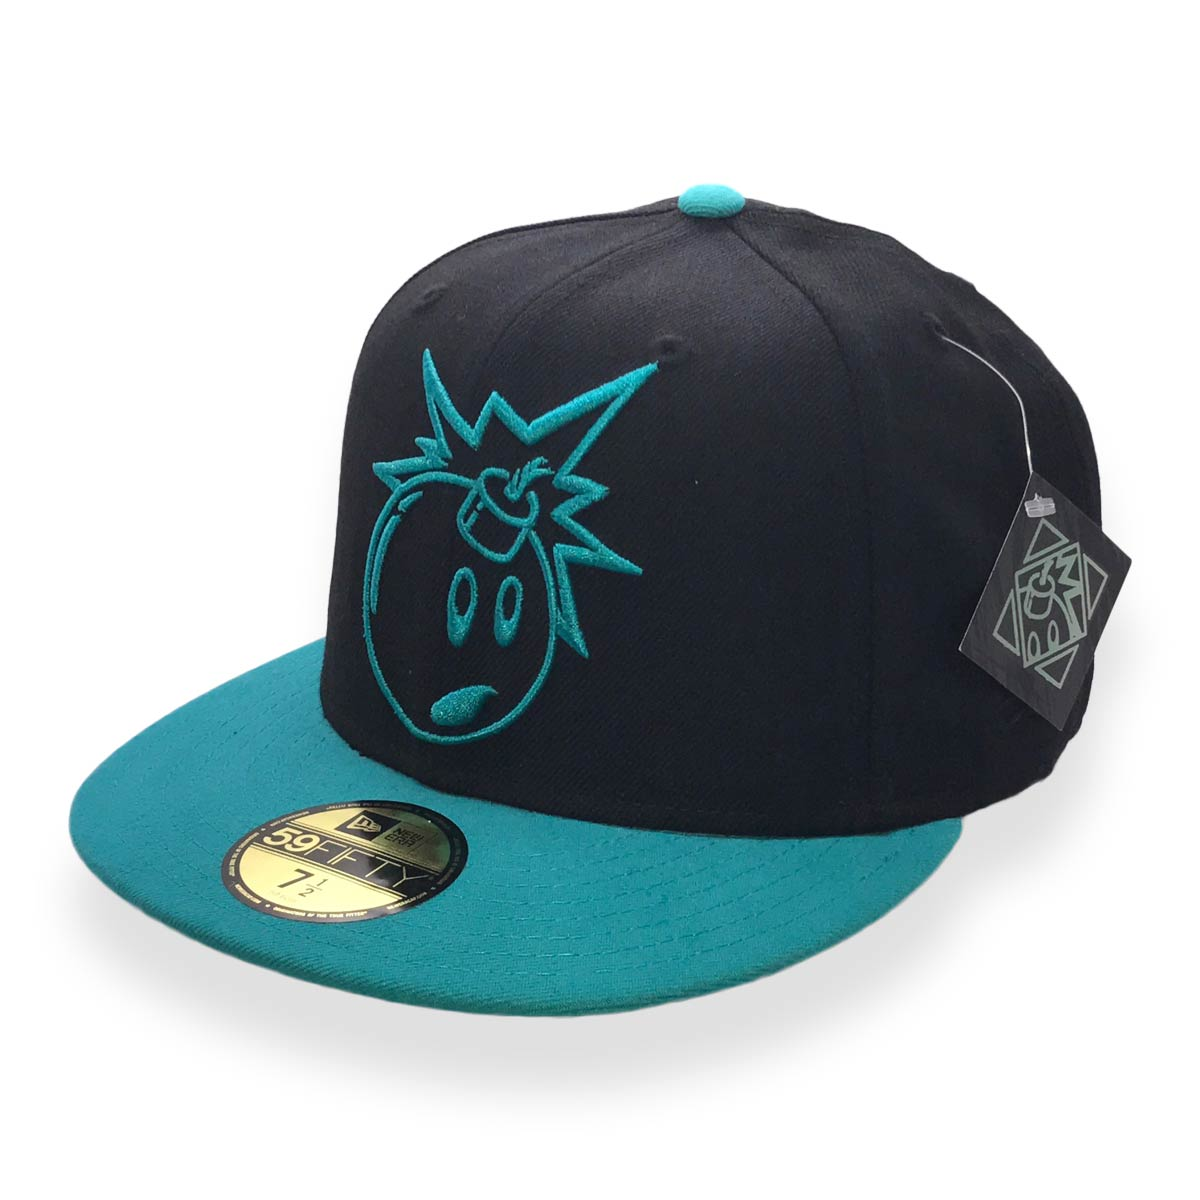 434a218c69b91 Details about NEW ERA X THE HUNDREDS ADAM BOMB FITTED MENS CAP